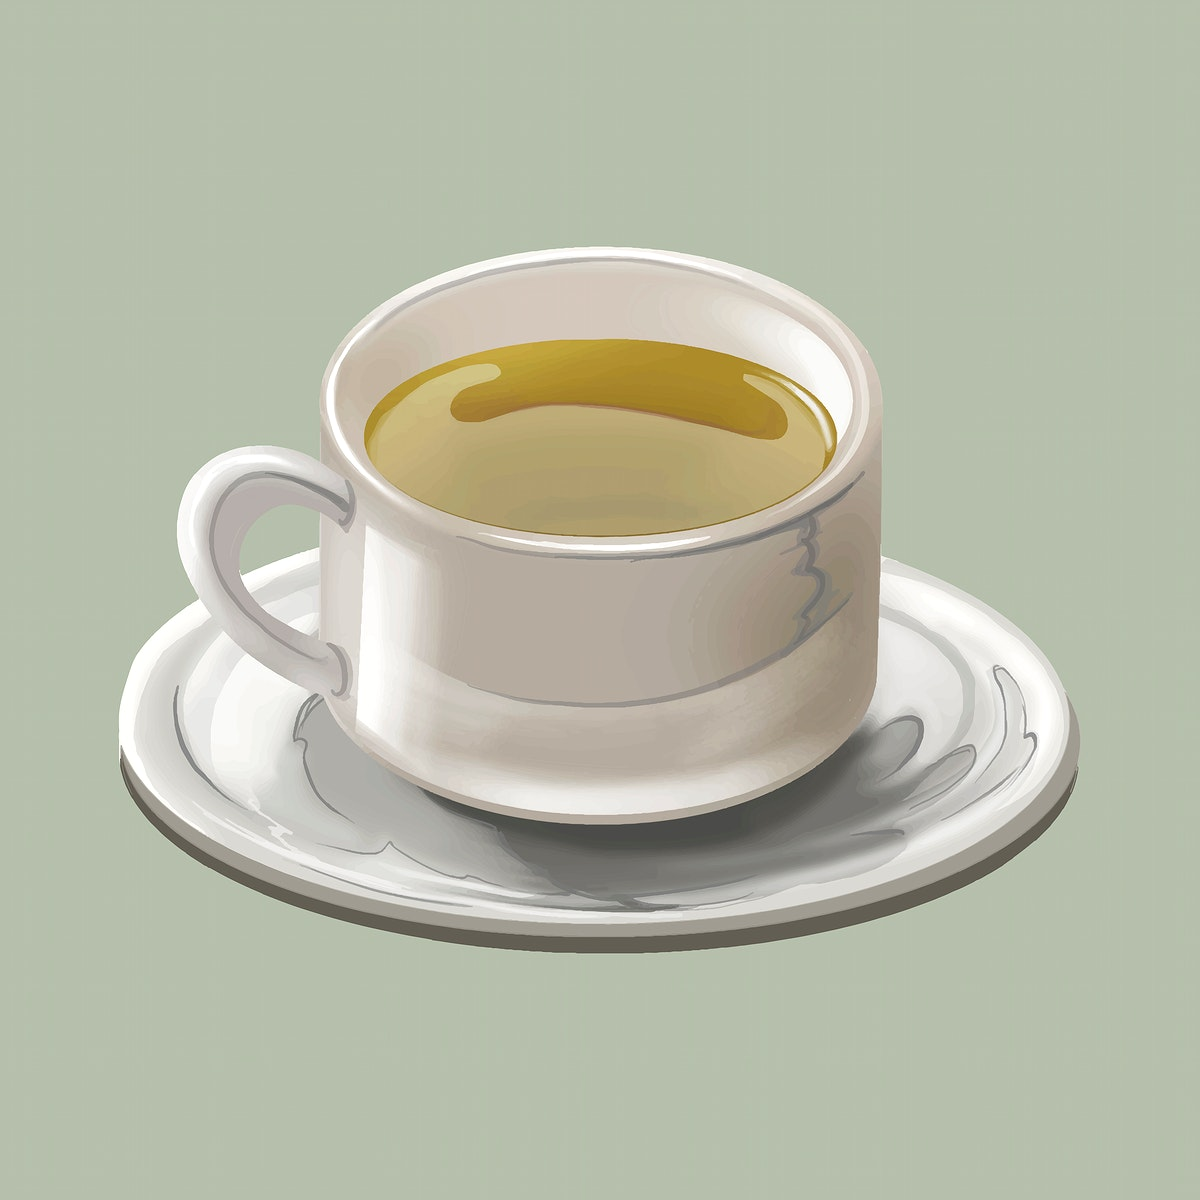 Cup of traditional Japanese green tea or Matcha